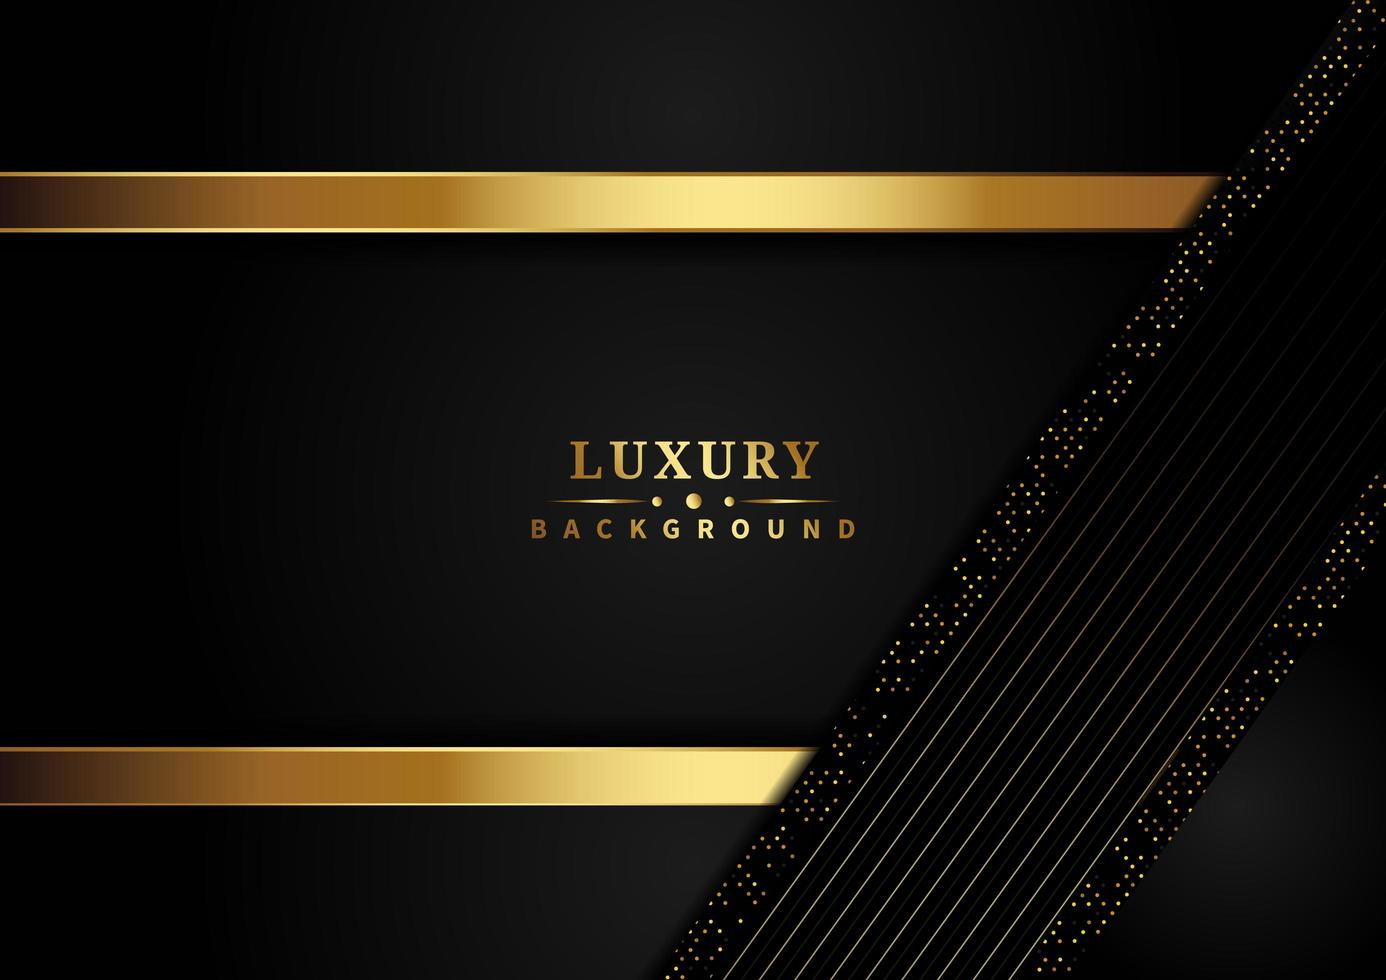 Luxury gold stripes and glitter effects overlapping on dark background  vector